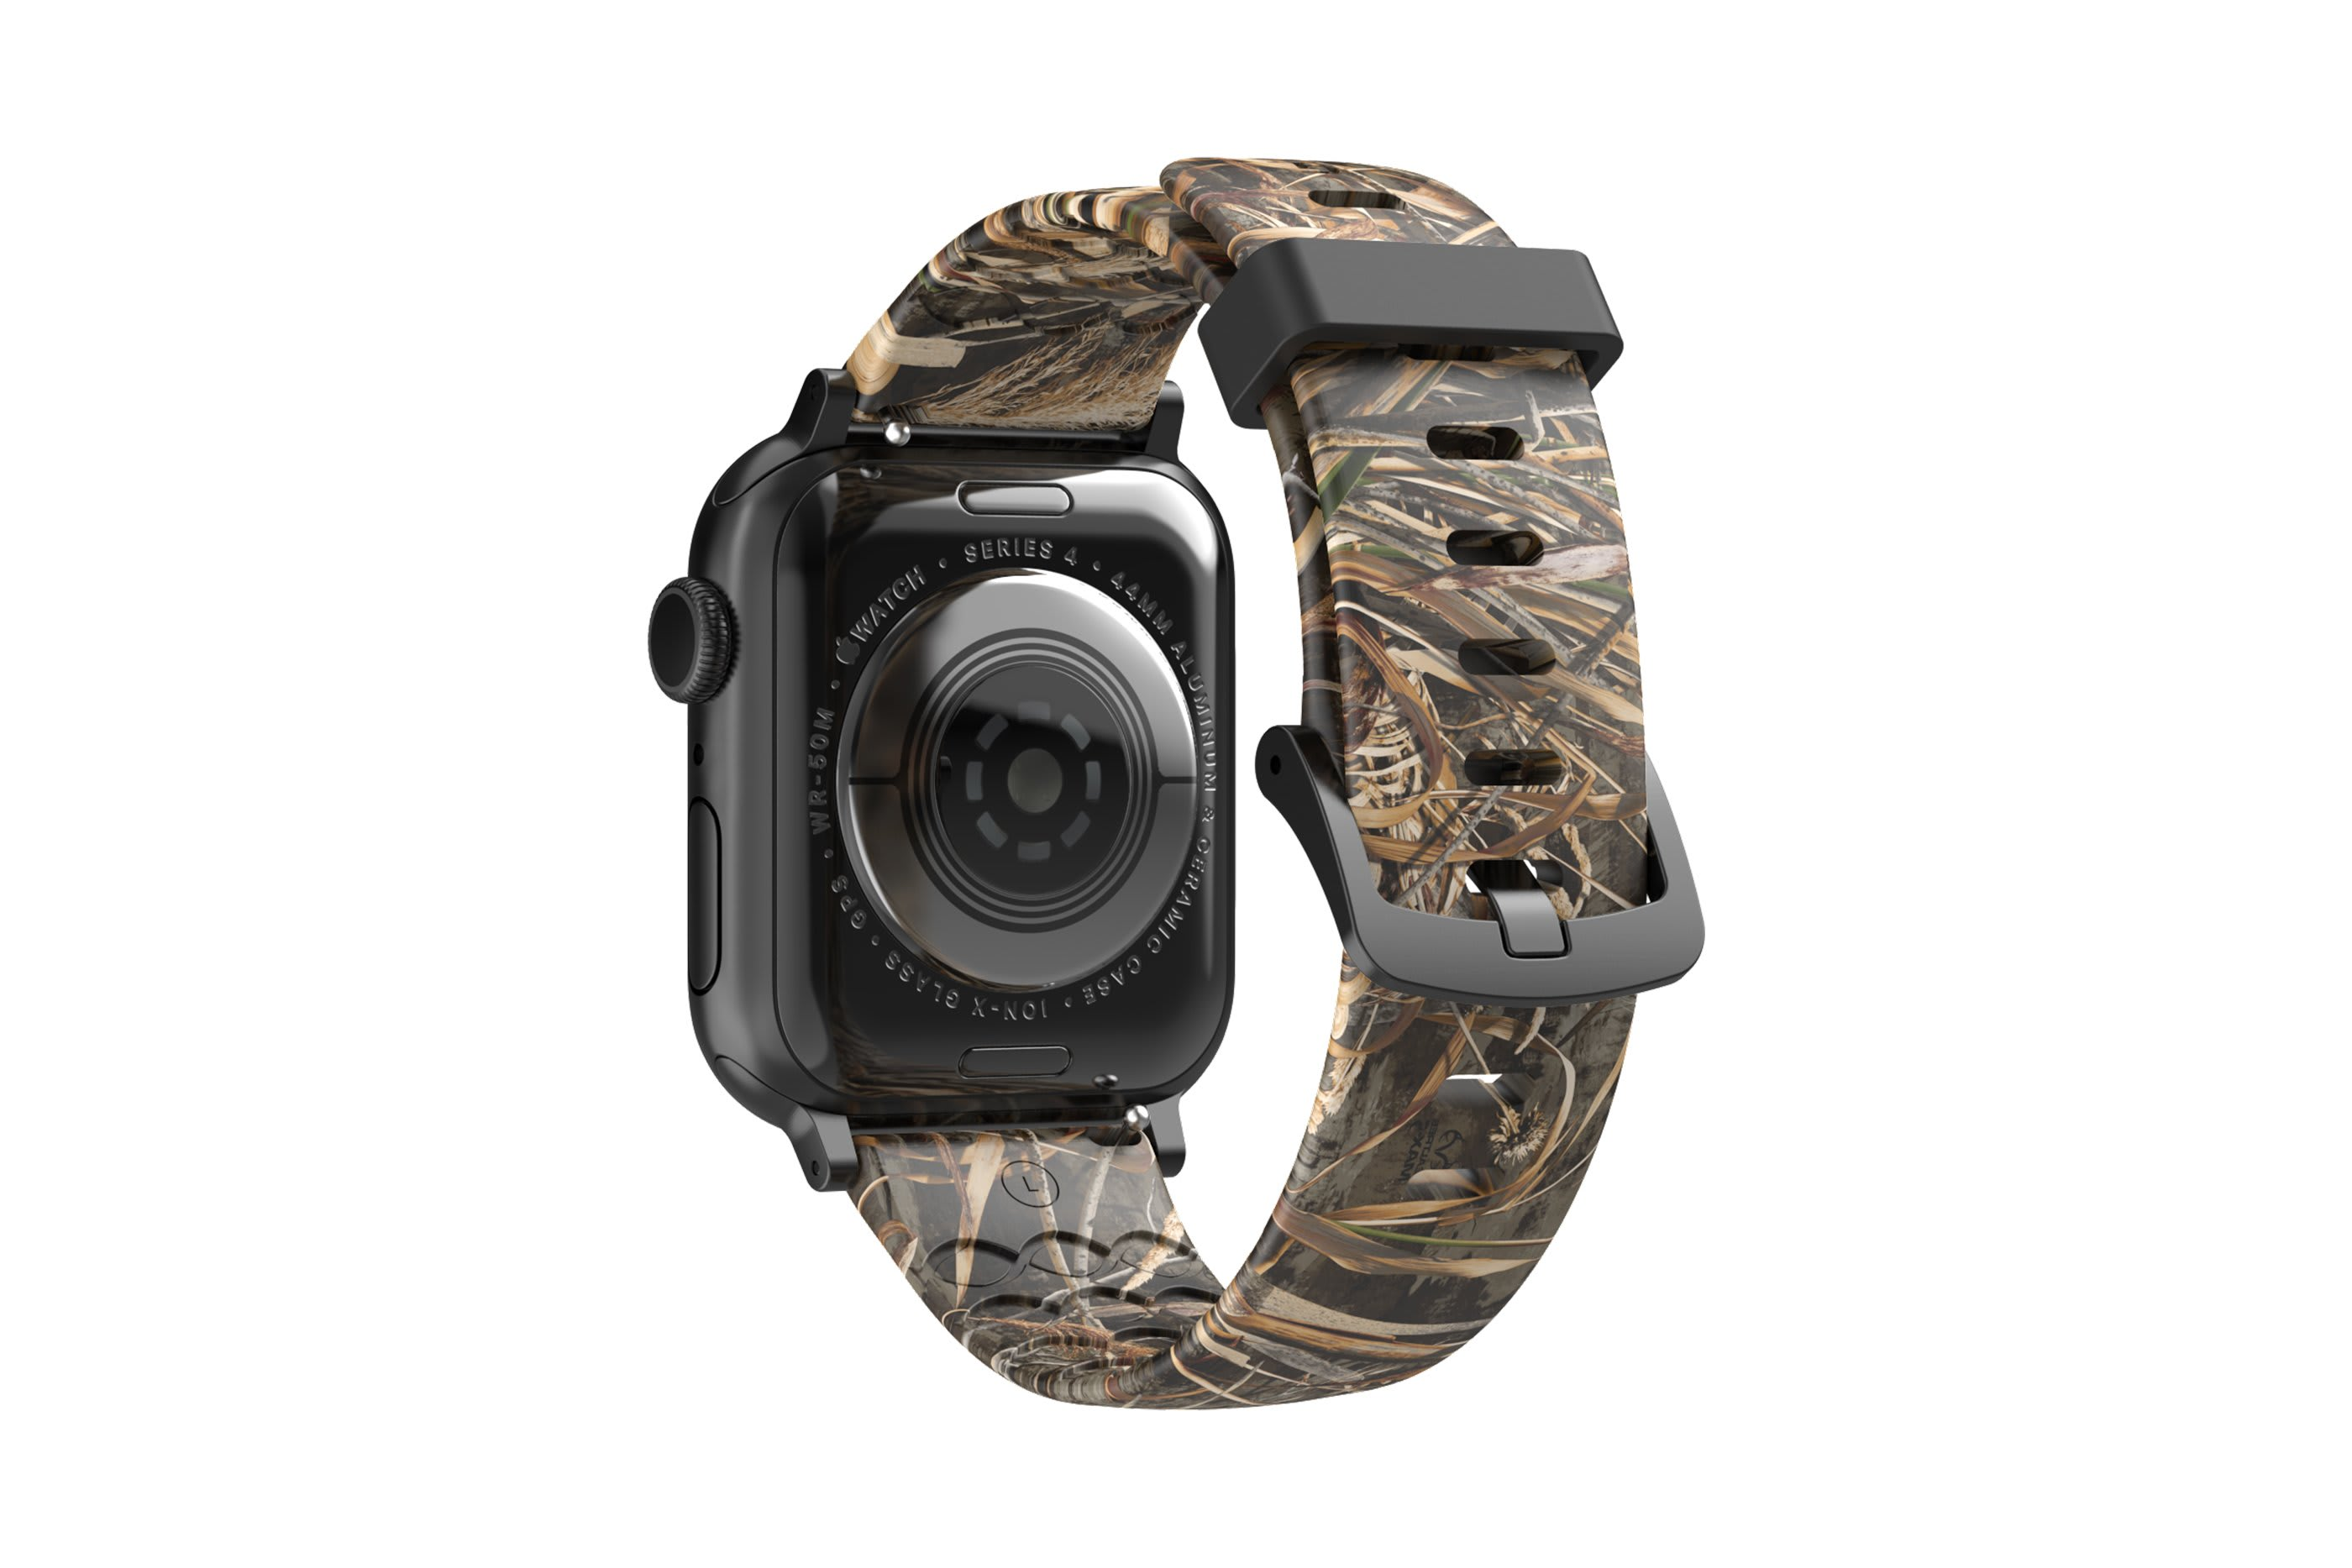 Realtree Max 5 Apple Watch Band with gray hardware viewed from top down